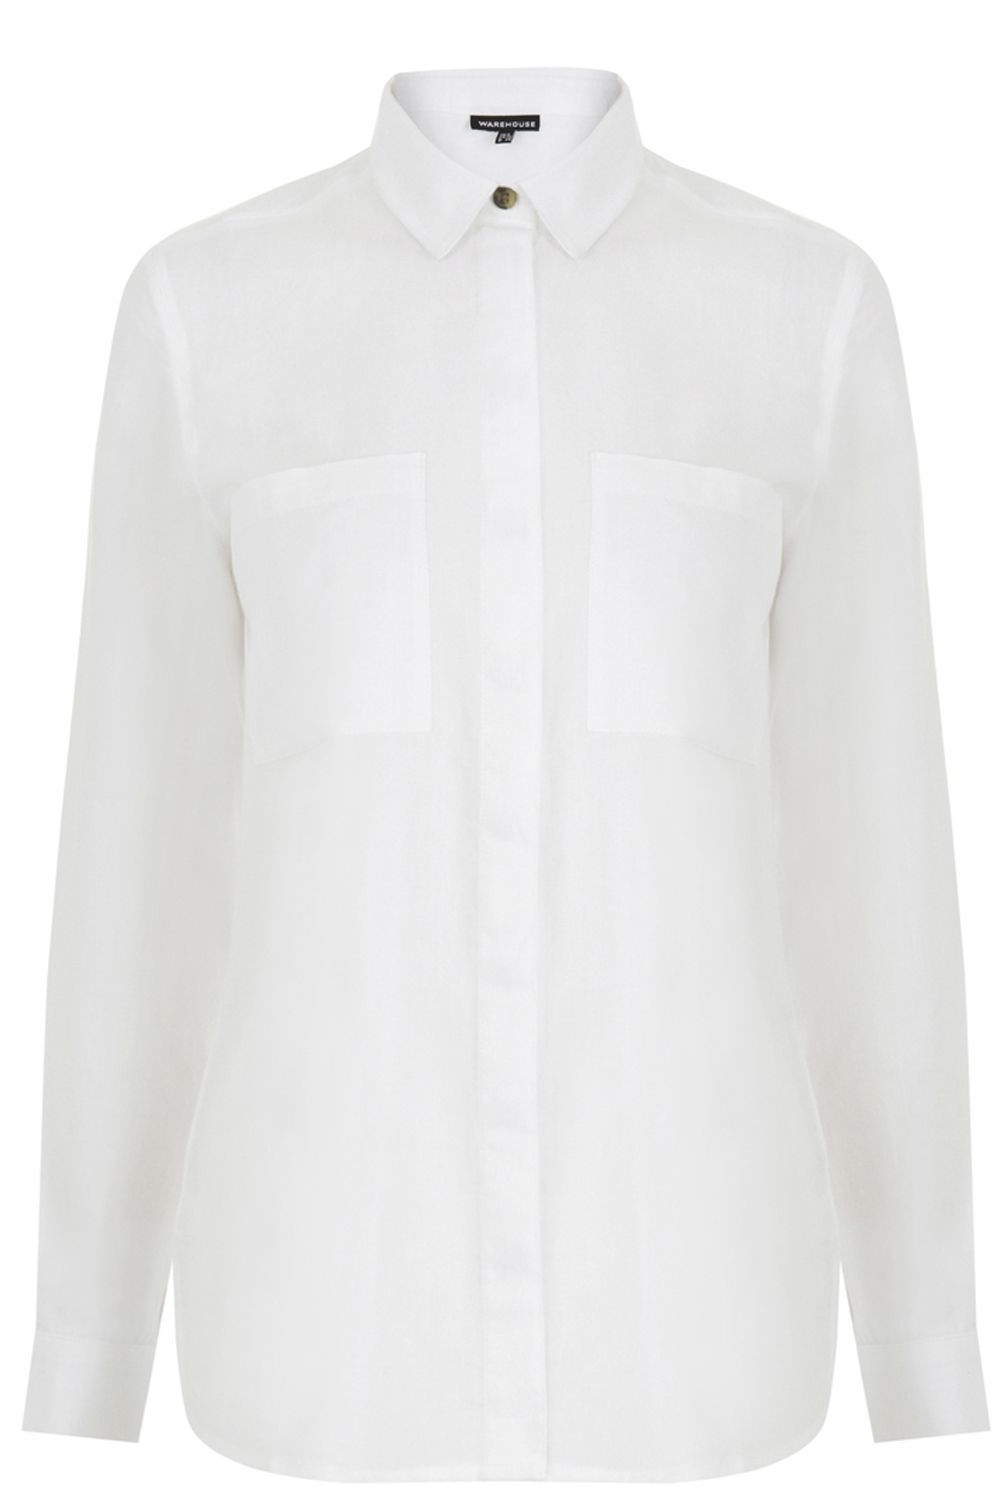 Relaxed Curved Hem Shirt, White - neckline: shirt collar/peter pan/zip with opening; pattern: plain; style: shirt; bust detail: pocket detail at bust; predominant colour: white; occasions: casual, creative work; length: standard; fibres: cotton - 100%; fit: straight cut; sleeve length: long sleeve; sleeve style: standard; texture group: cotton feel fabrics; pattern type: fabric; season: s/s 2016